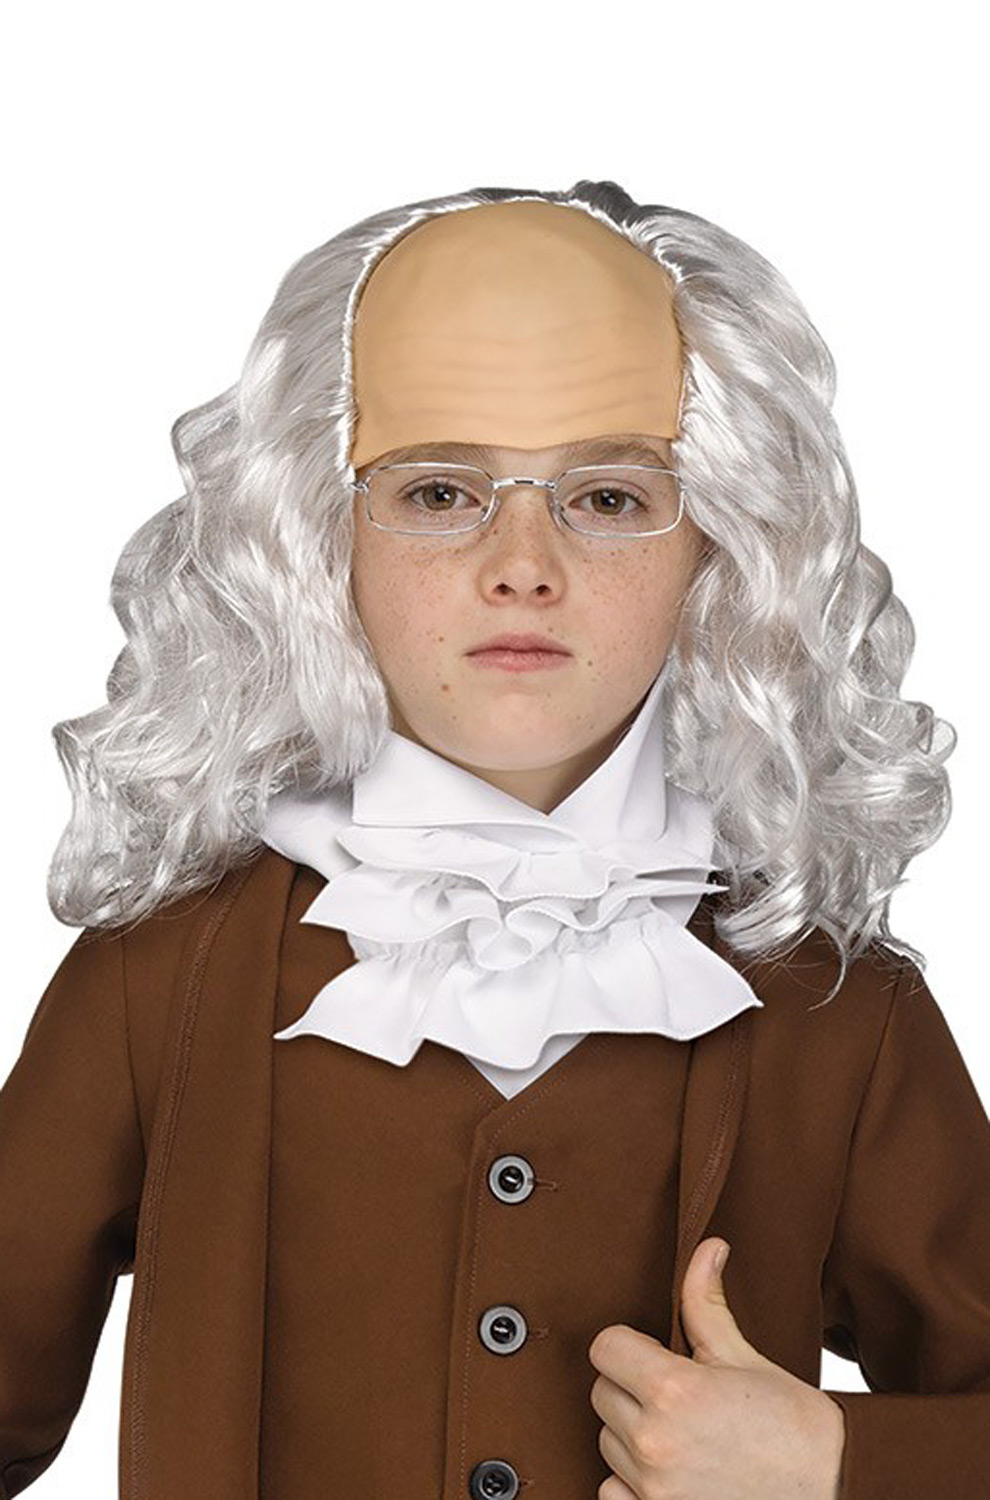 Child Colonial Wig Costume Accessory Kids 4th of July